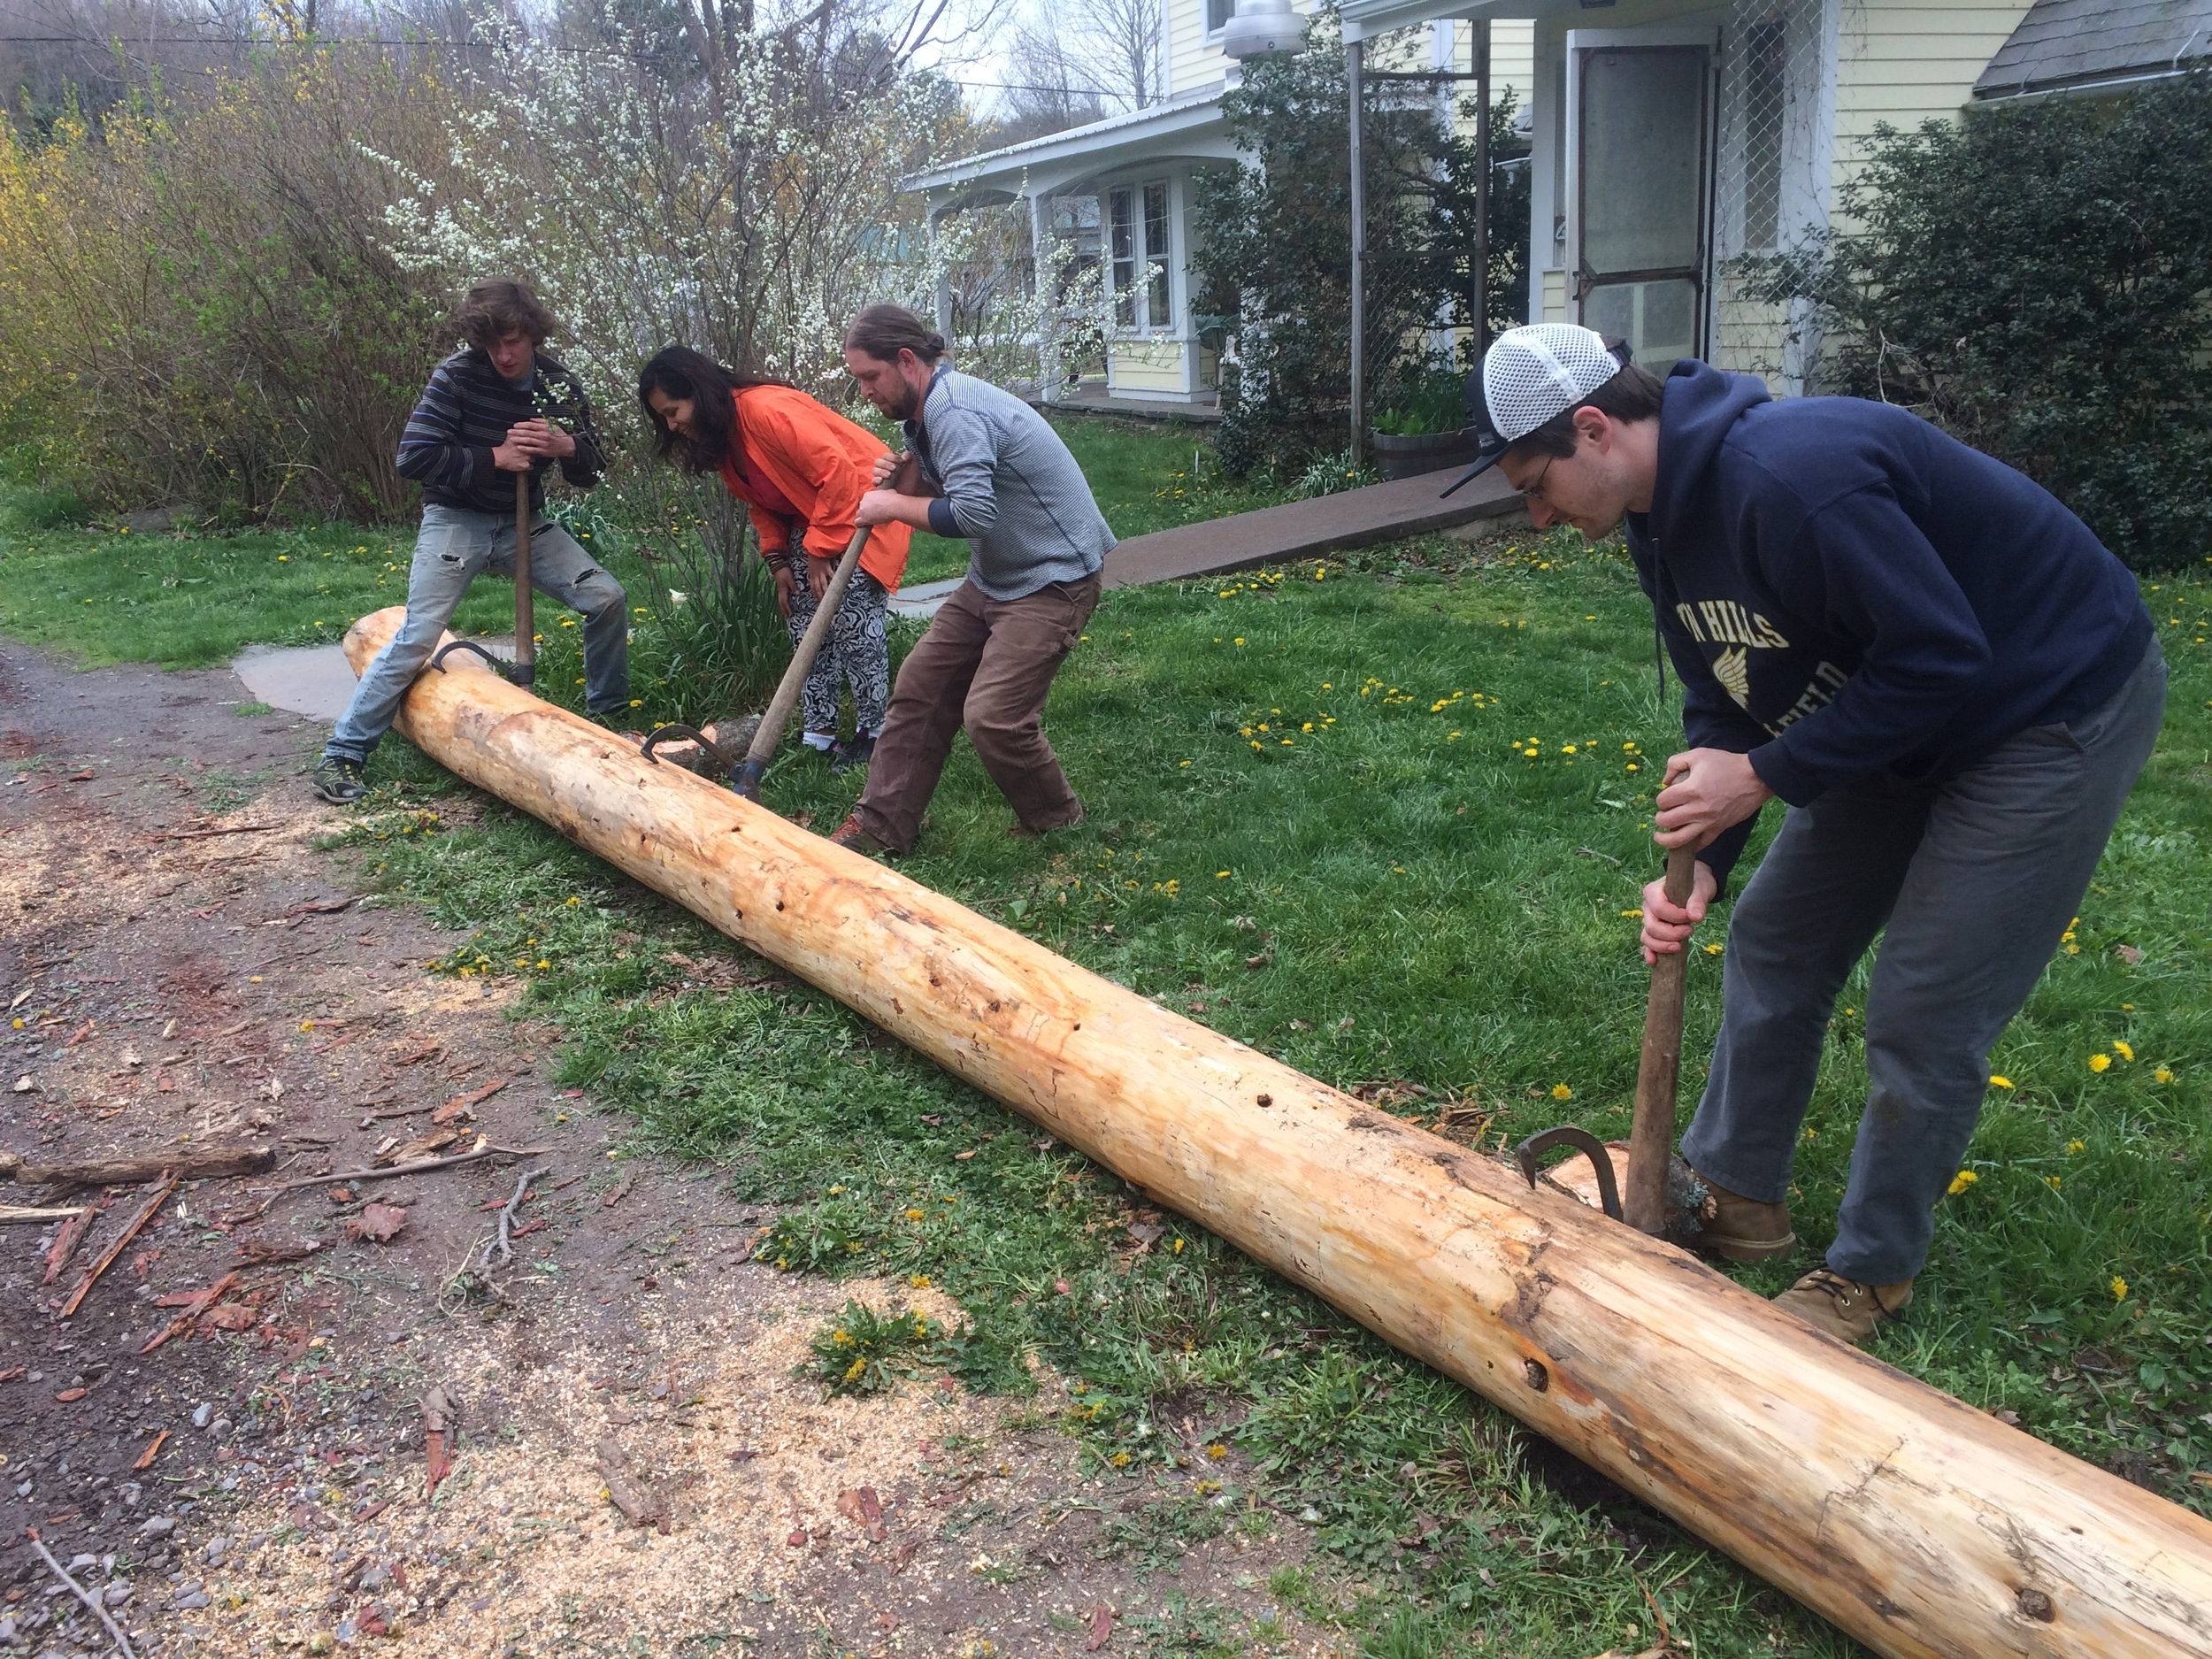 New log being rolled into place.